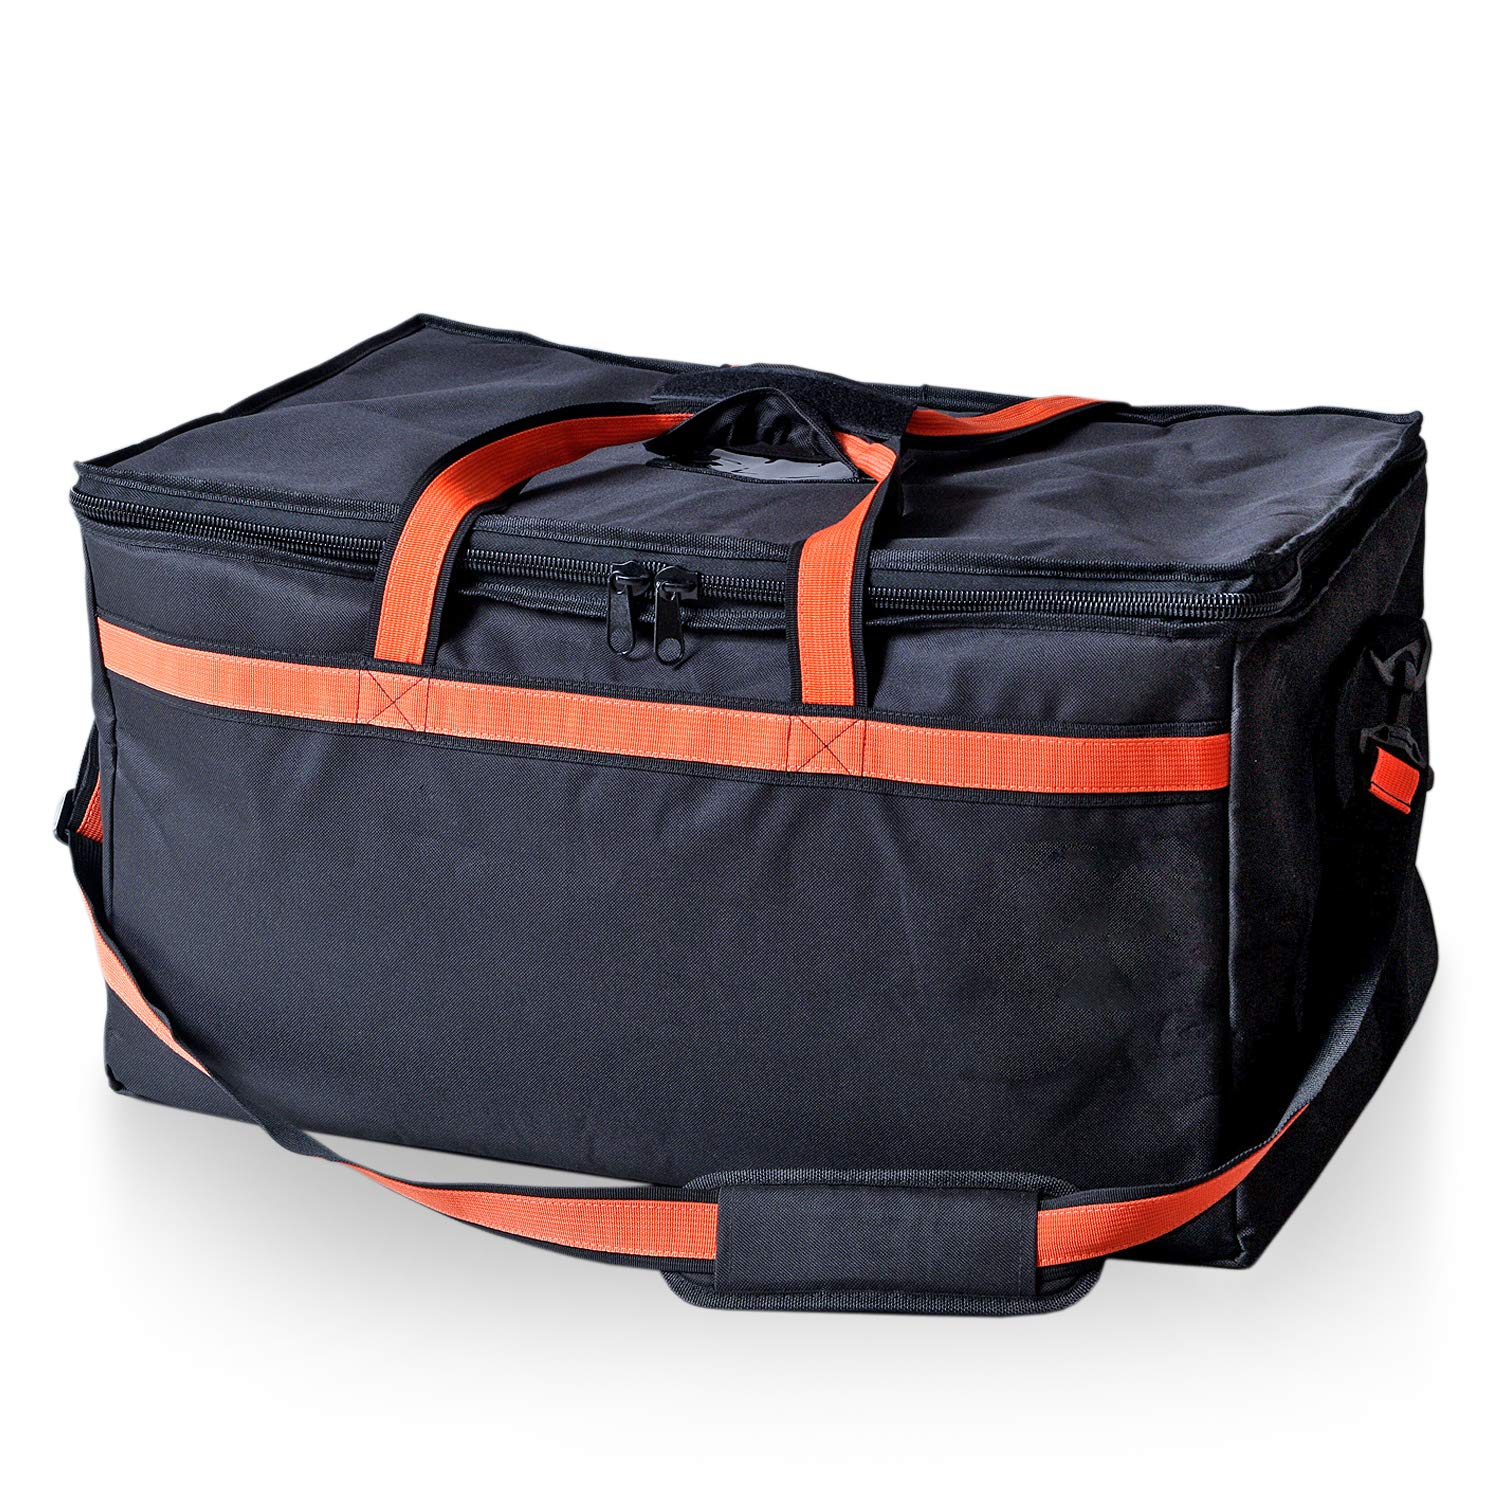 Insulated Commercial Food Delivery Bag by 365 La Kitchen | Practical Delivery Food Bag | Cold/Hot Bag for Food Delivery Services Uber Eats | Heavy Duty Zipper with Durable Comfortable Shoulder Strap